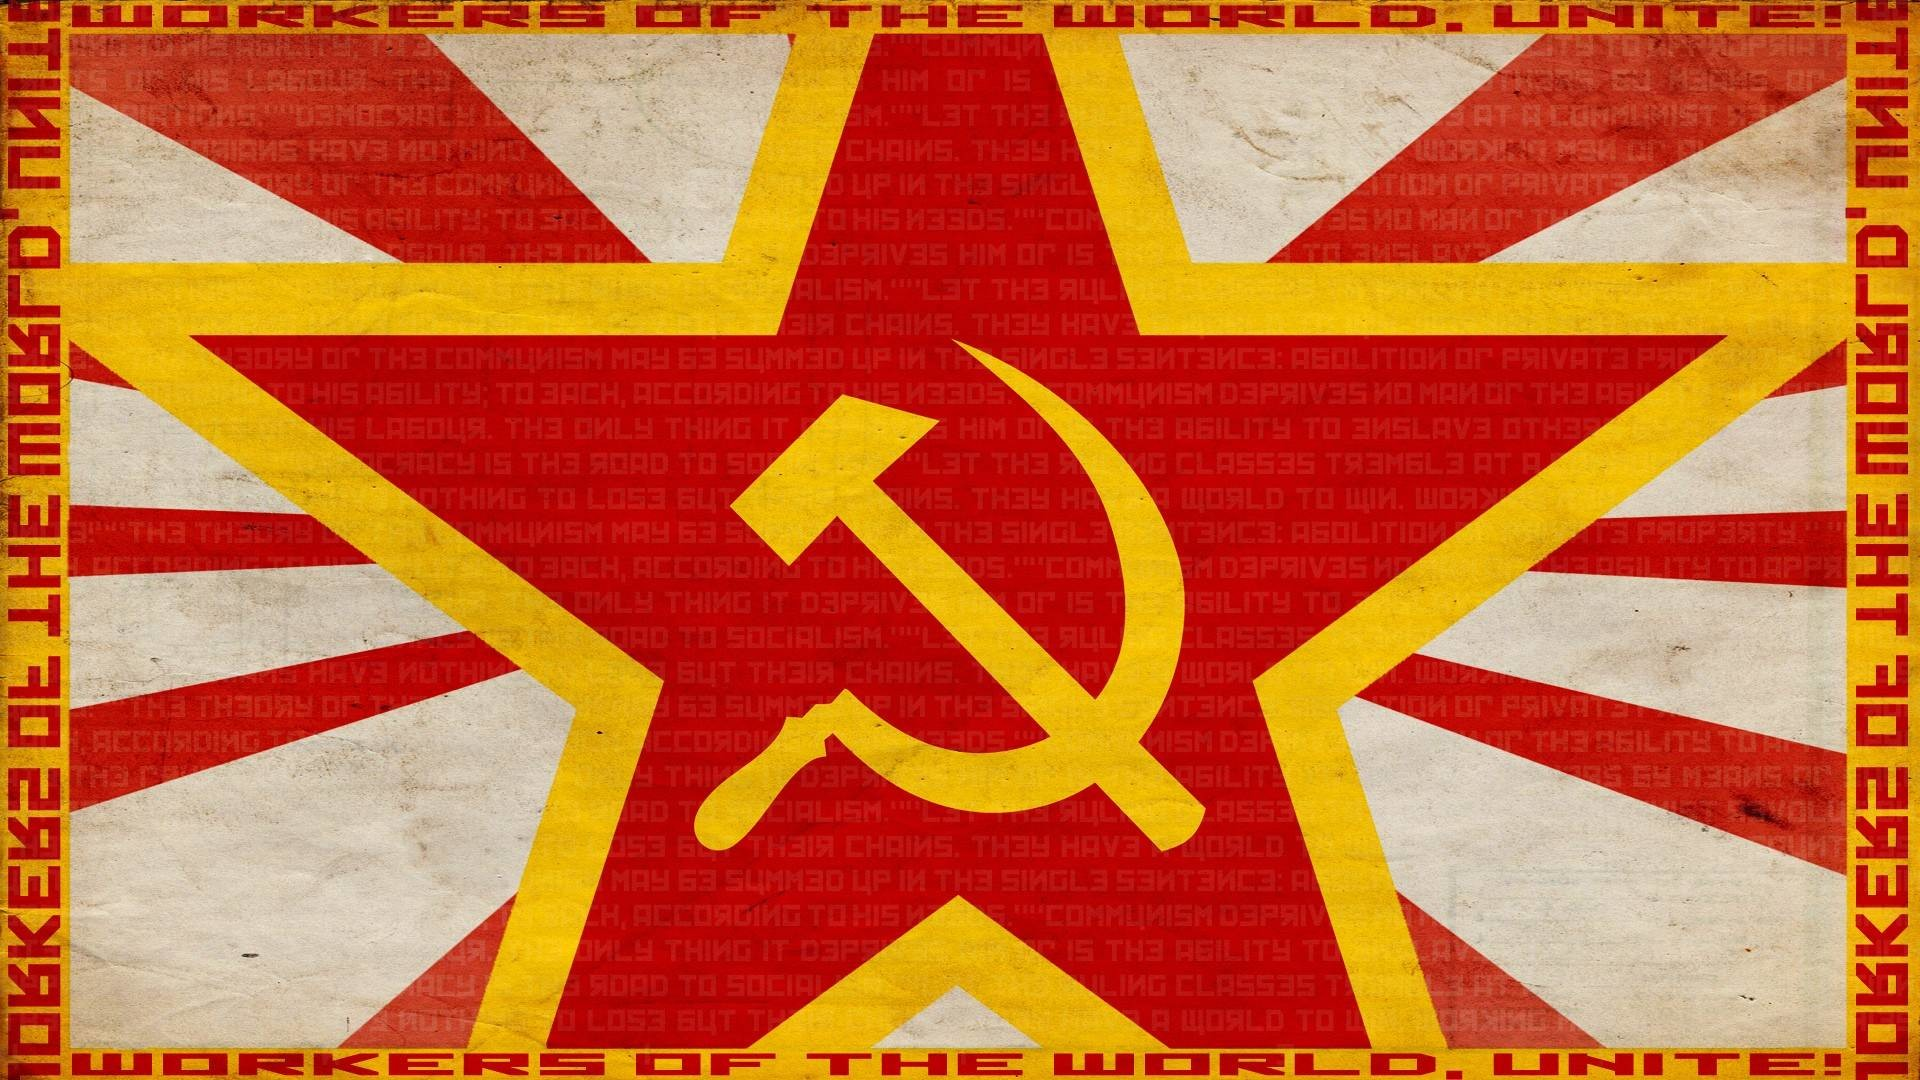 Soviet propaganda wallpaper 57 images - Ussr wallpaper ...